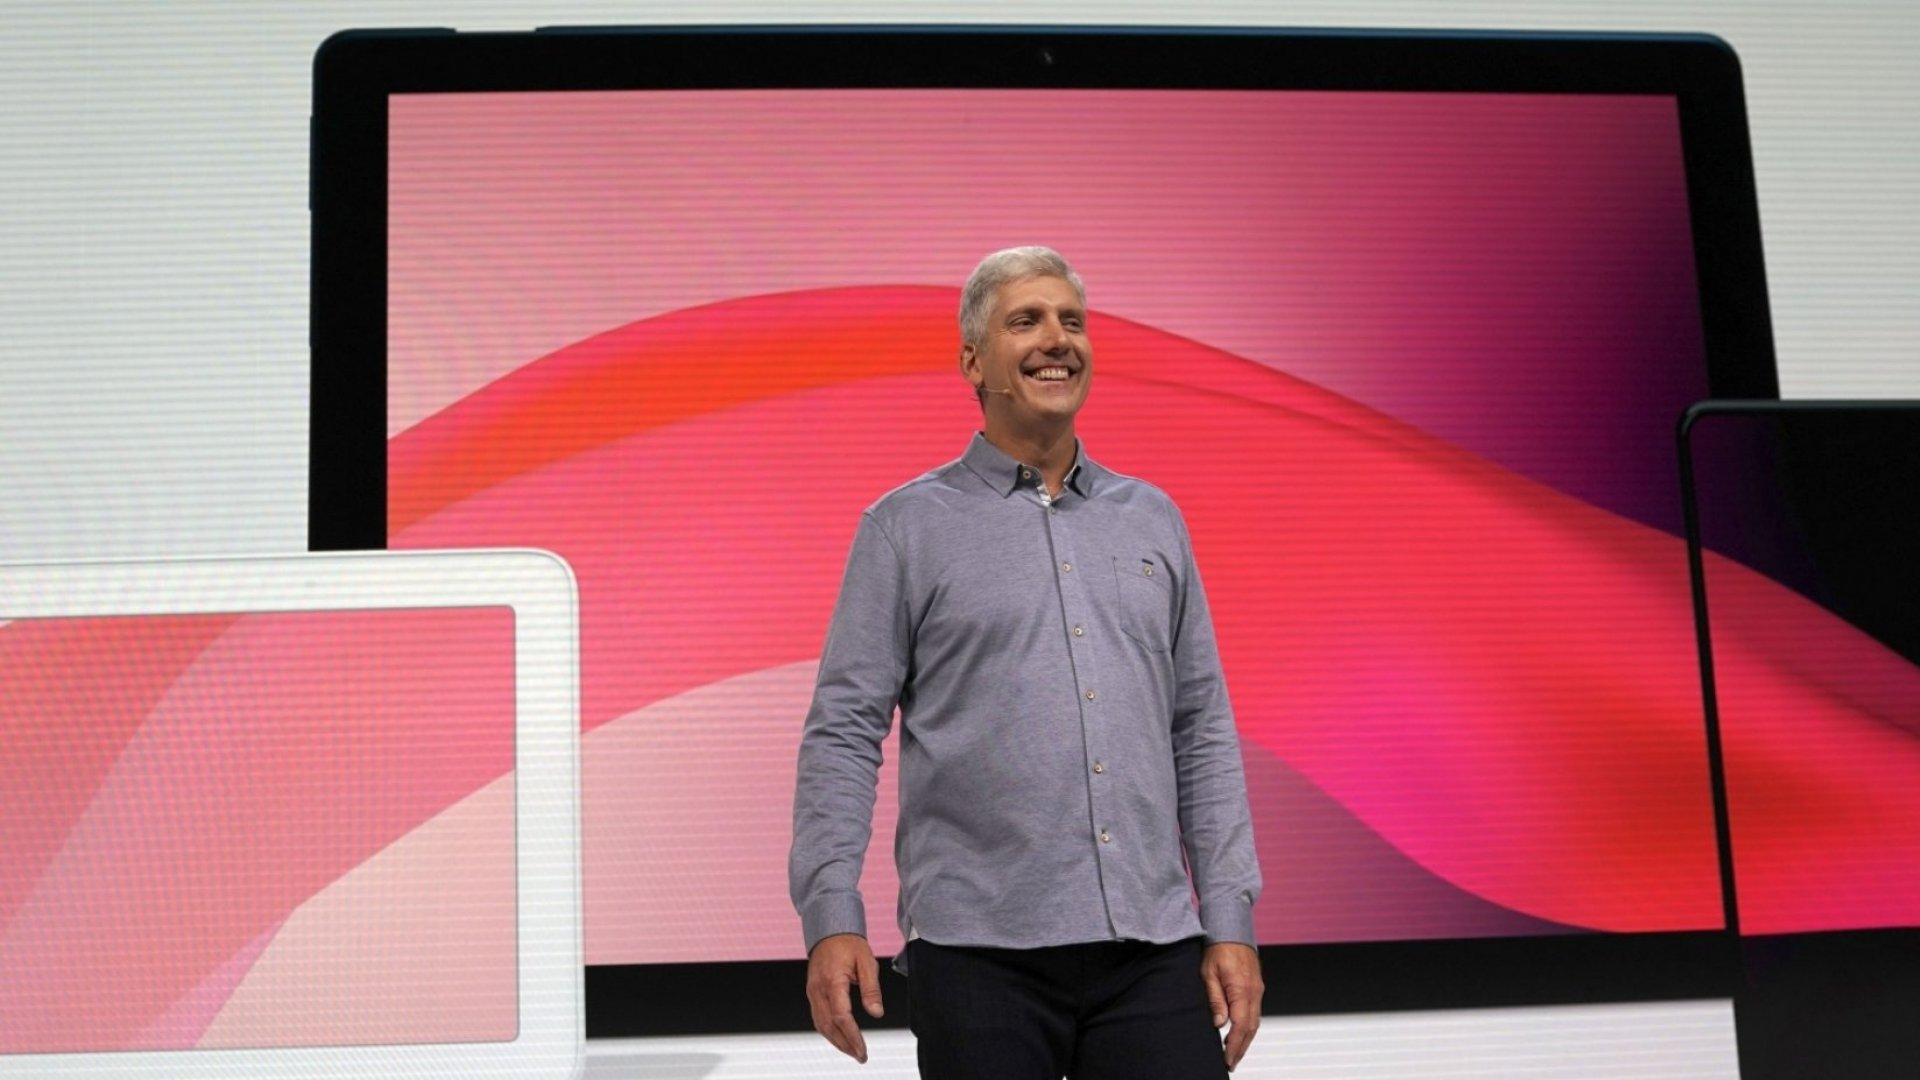 Rick Osterloh, Google's SVP of hardware, announcing the Pixel Slate, Pixel 3 and Google Home Hub.